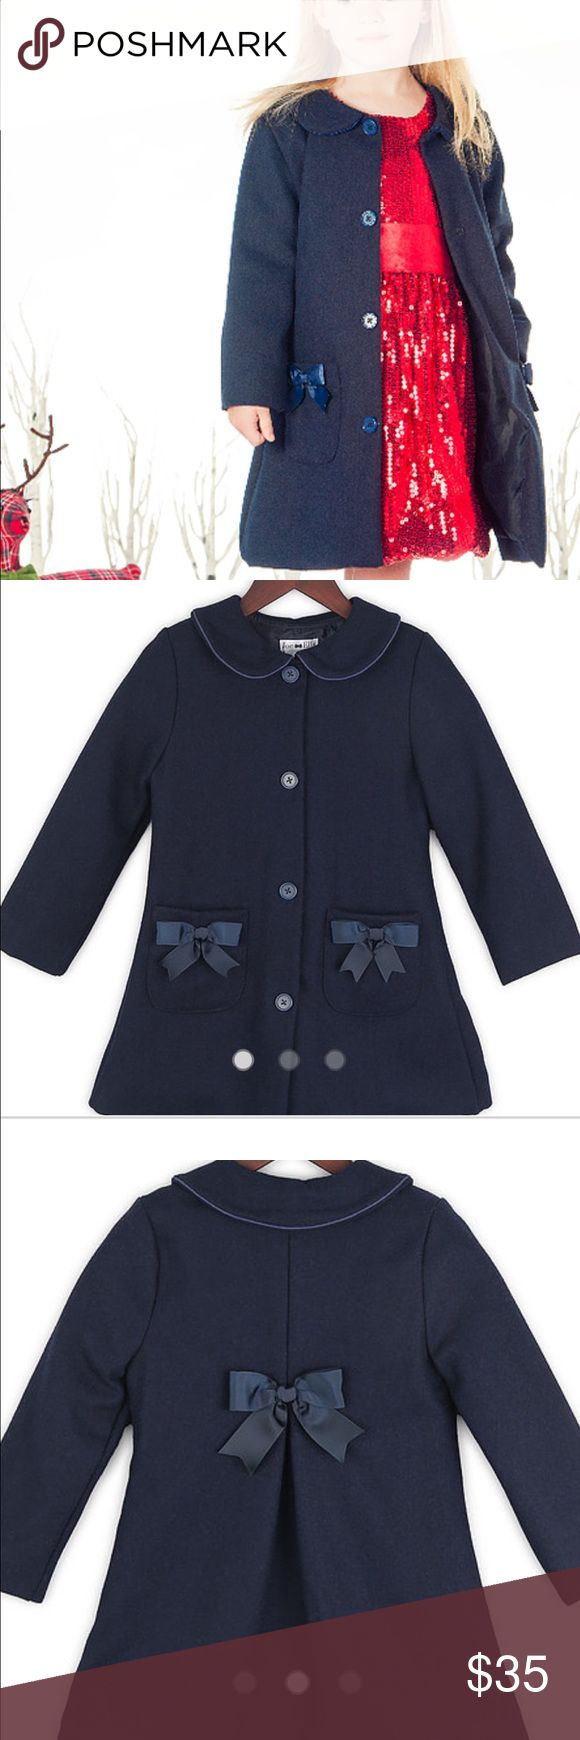 Joe-Ella Navy Blue Pea Coat PRODUCT FEATURES The classic design of this navy pea coat is accented with colour co-ordinated buttons, bows and piping around the Peter Pan collar. The combination of polyester and rayon make the coat feel like velvet while a pleat in the back gives this coat extra fulness, comfort and style.   Gently Used, smoke free home. Joe-Ella Jackets & Coats Pea Coats